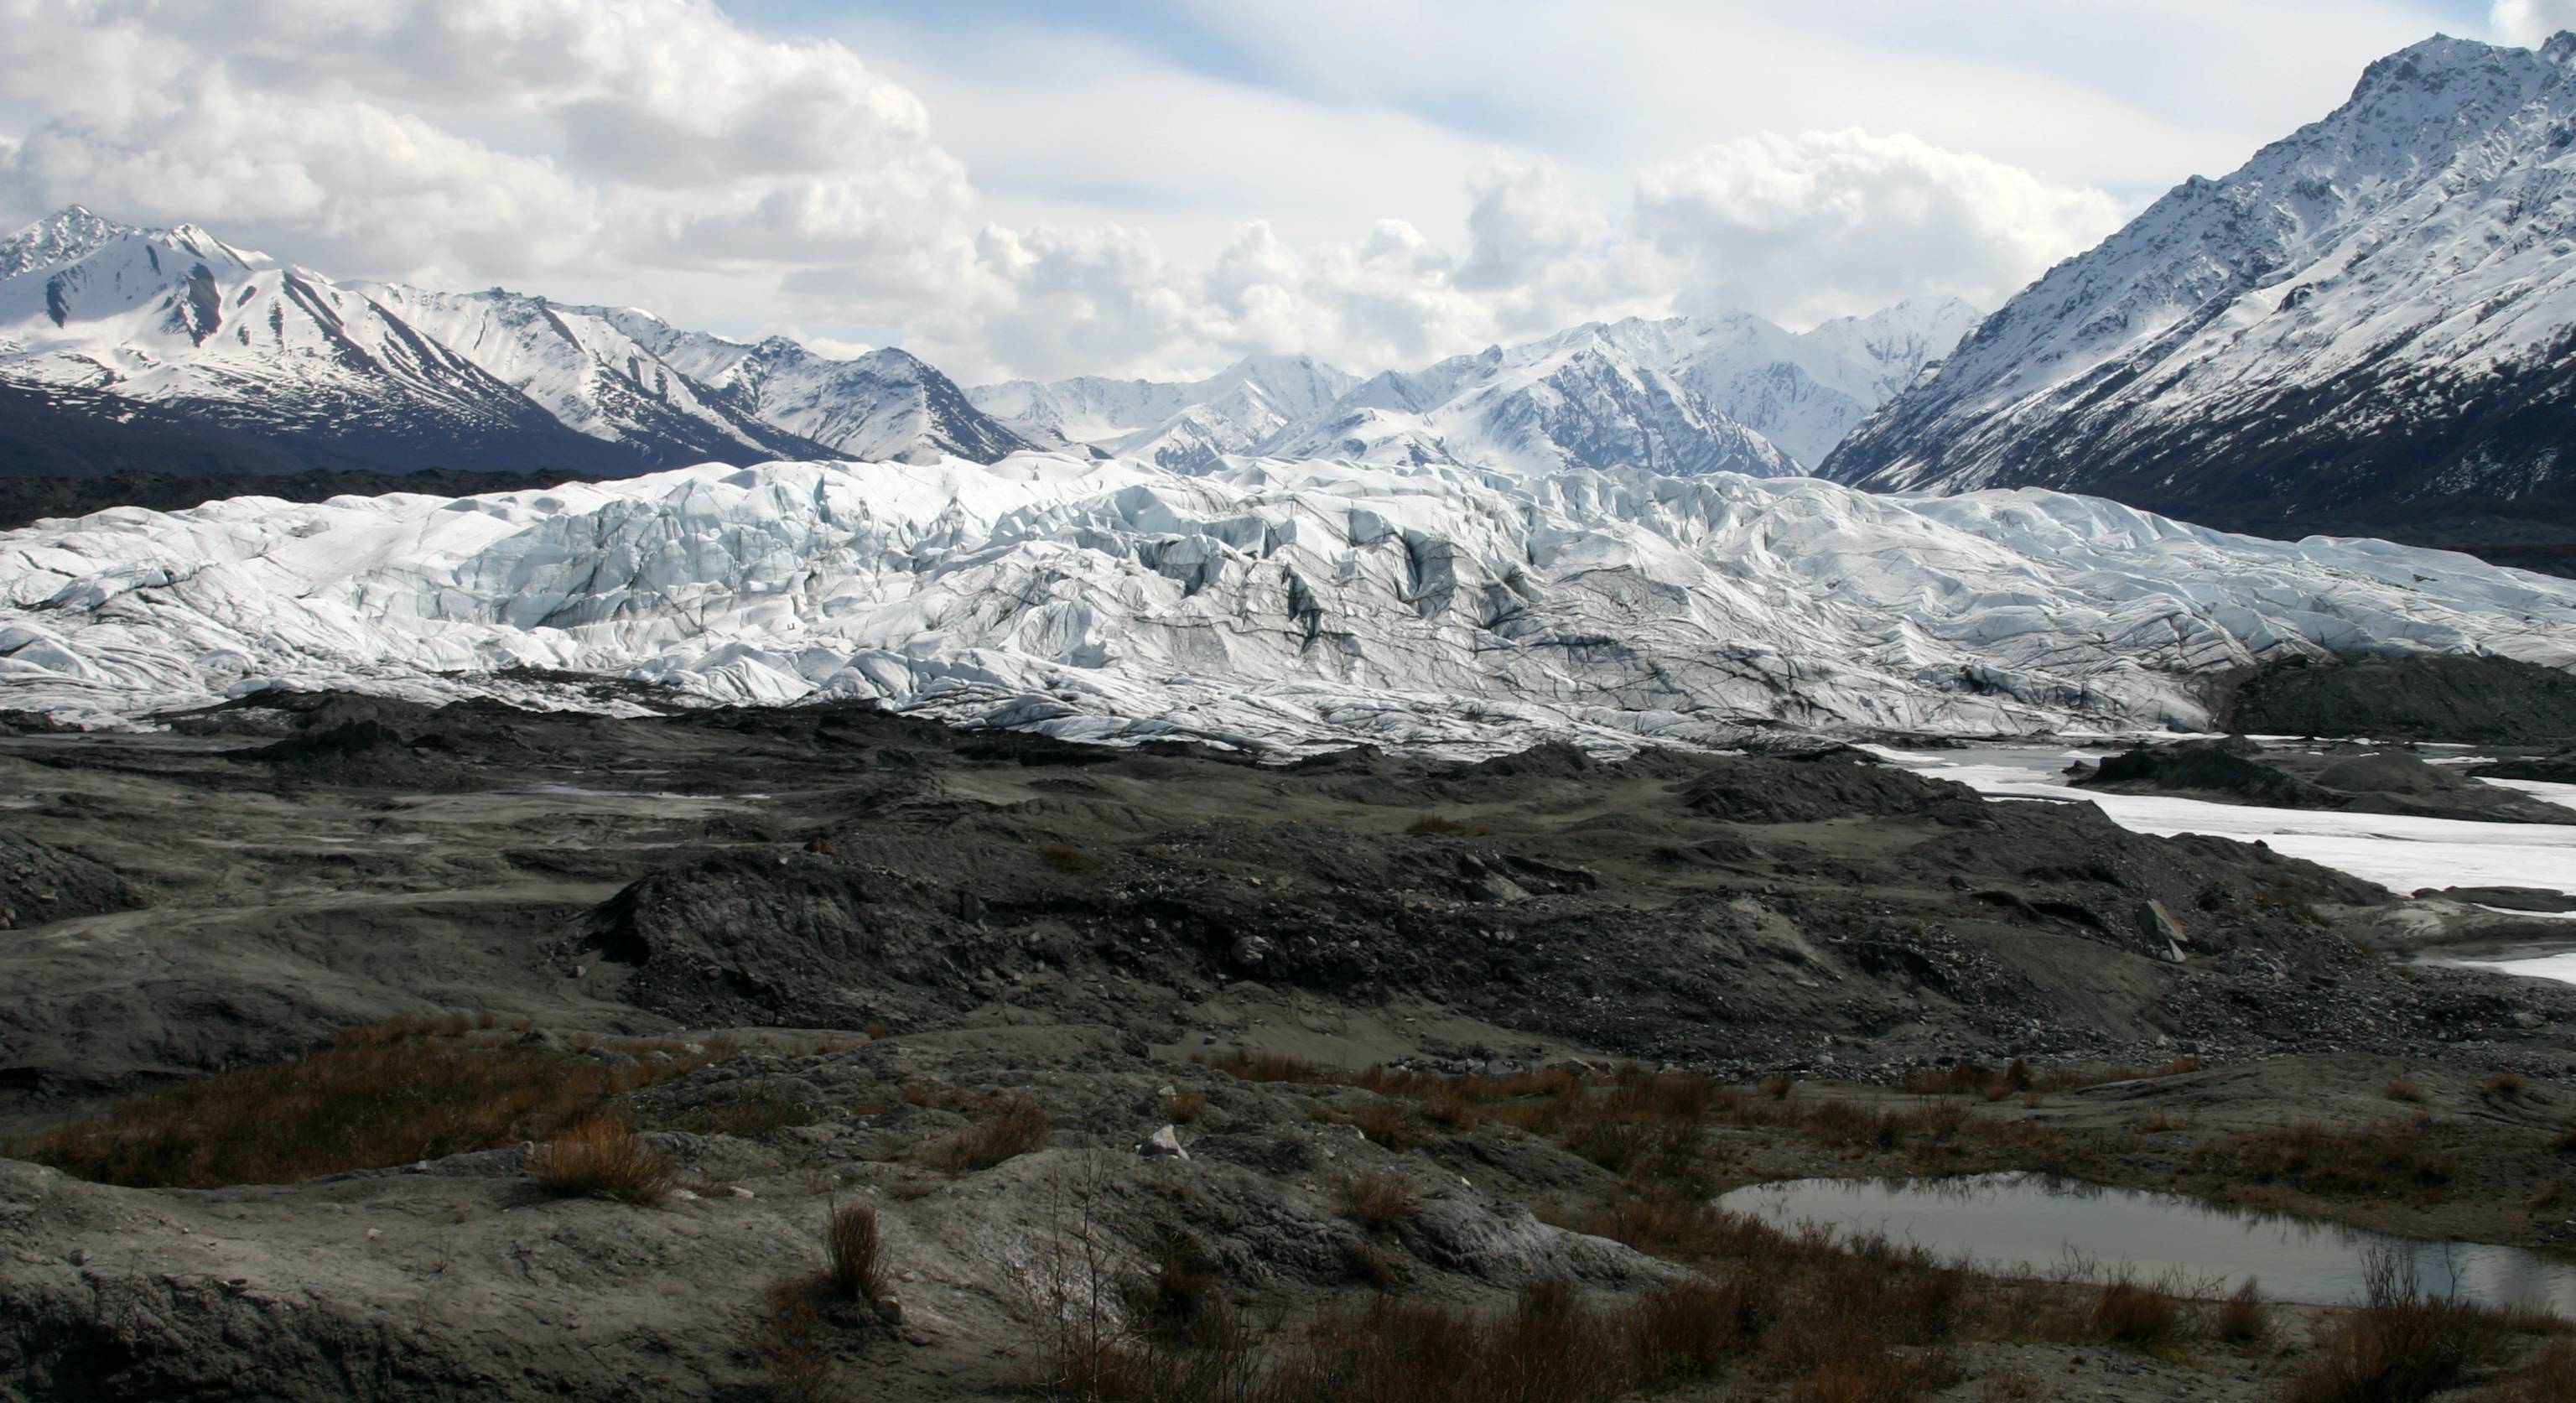 By Frank K. from Anchorage, Alaska, USA (View of the Matanuska Glacier from the parking lot) [CC-BY-2.0 (http://creativecommons.org/licenses/by/2.0)], via Wikimedia Commons